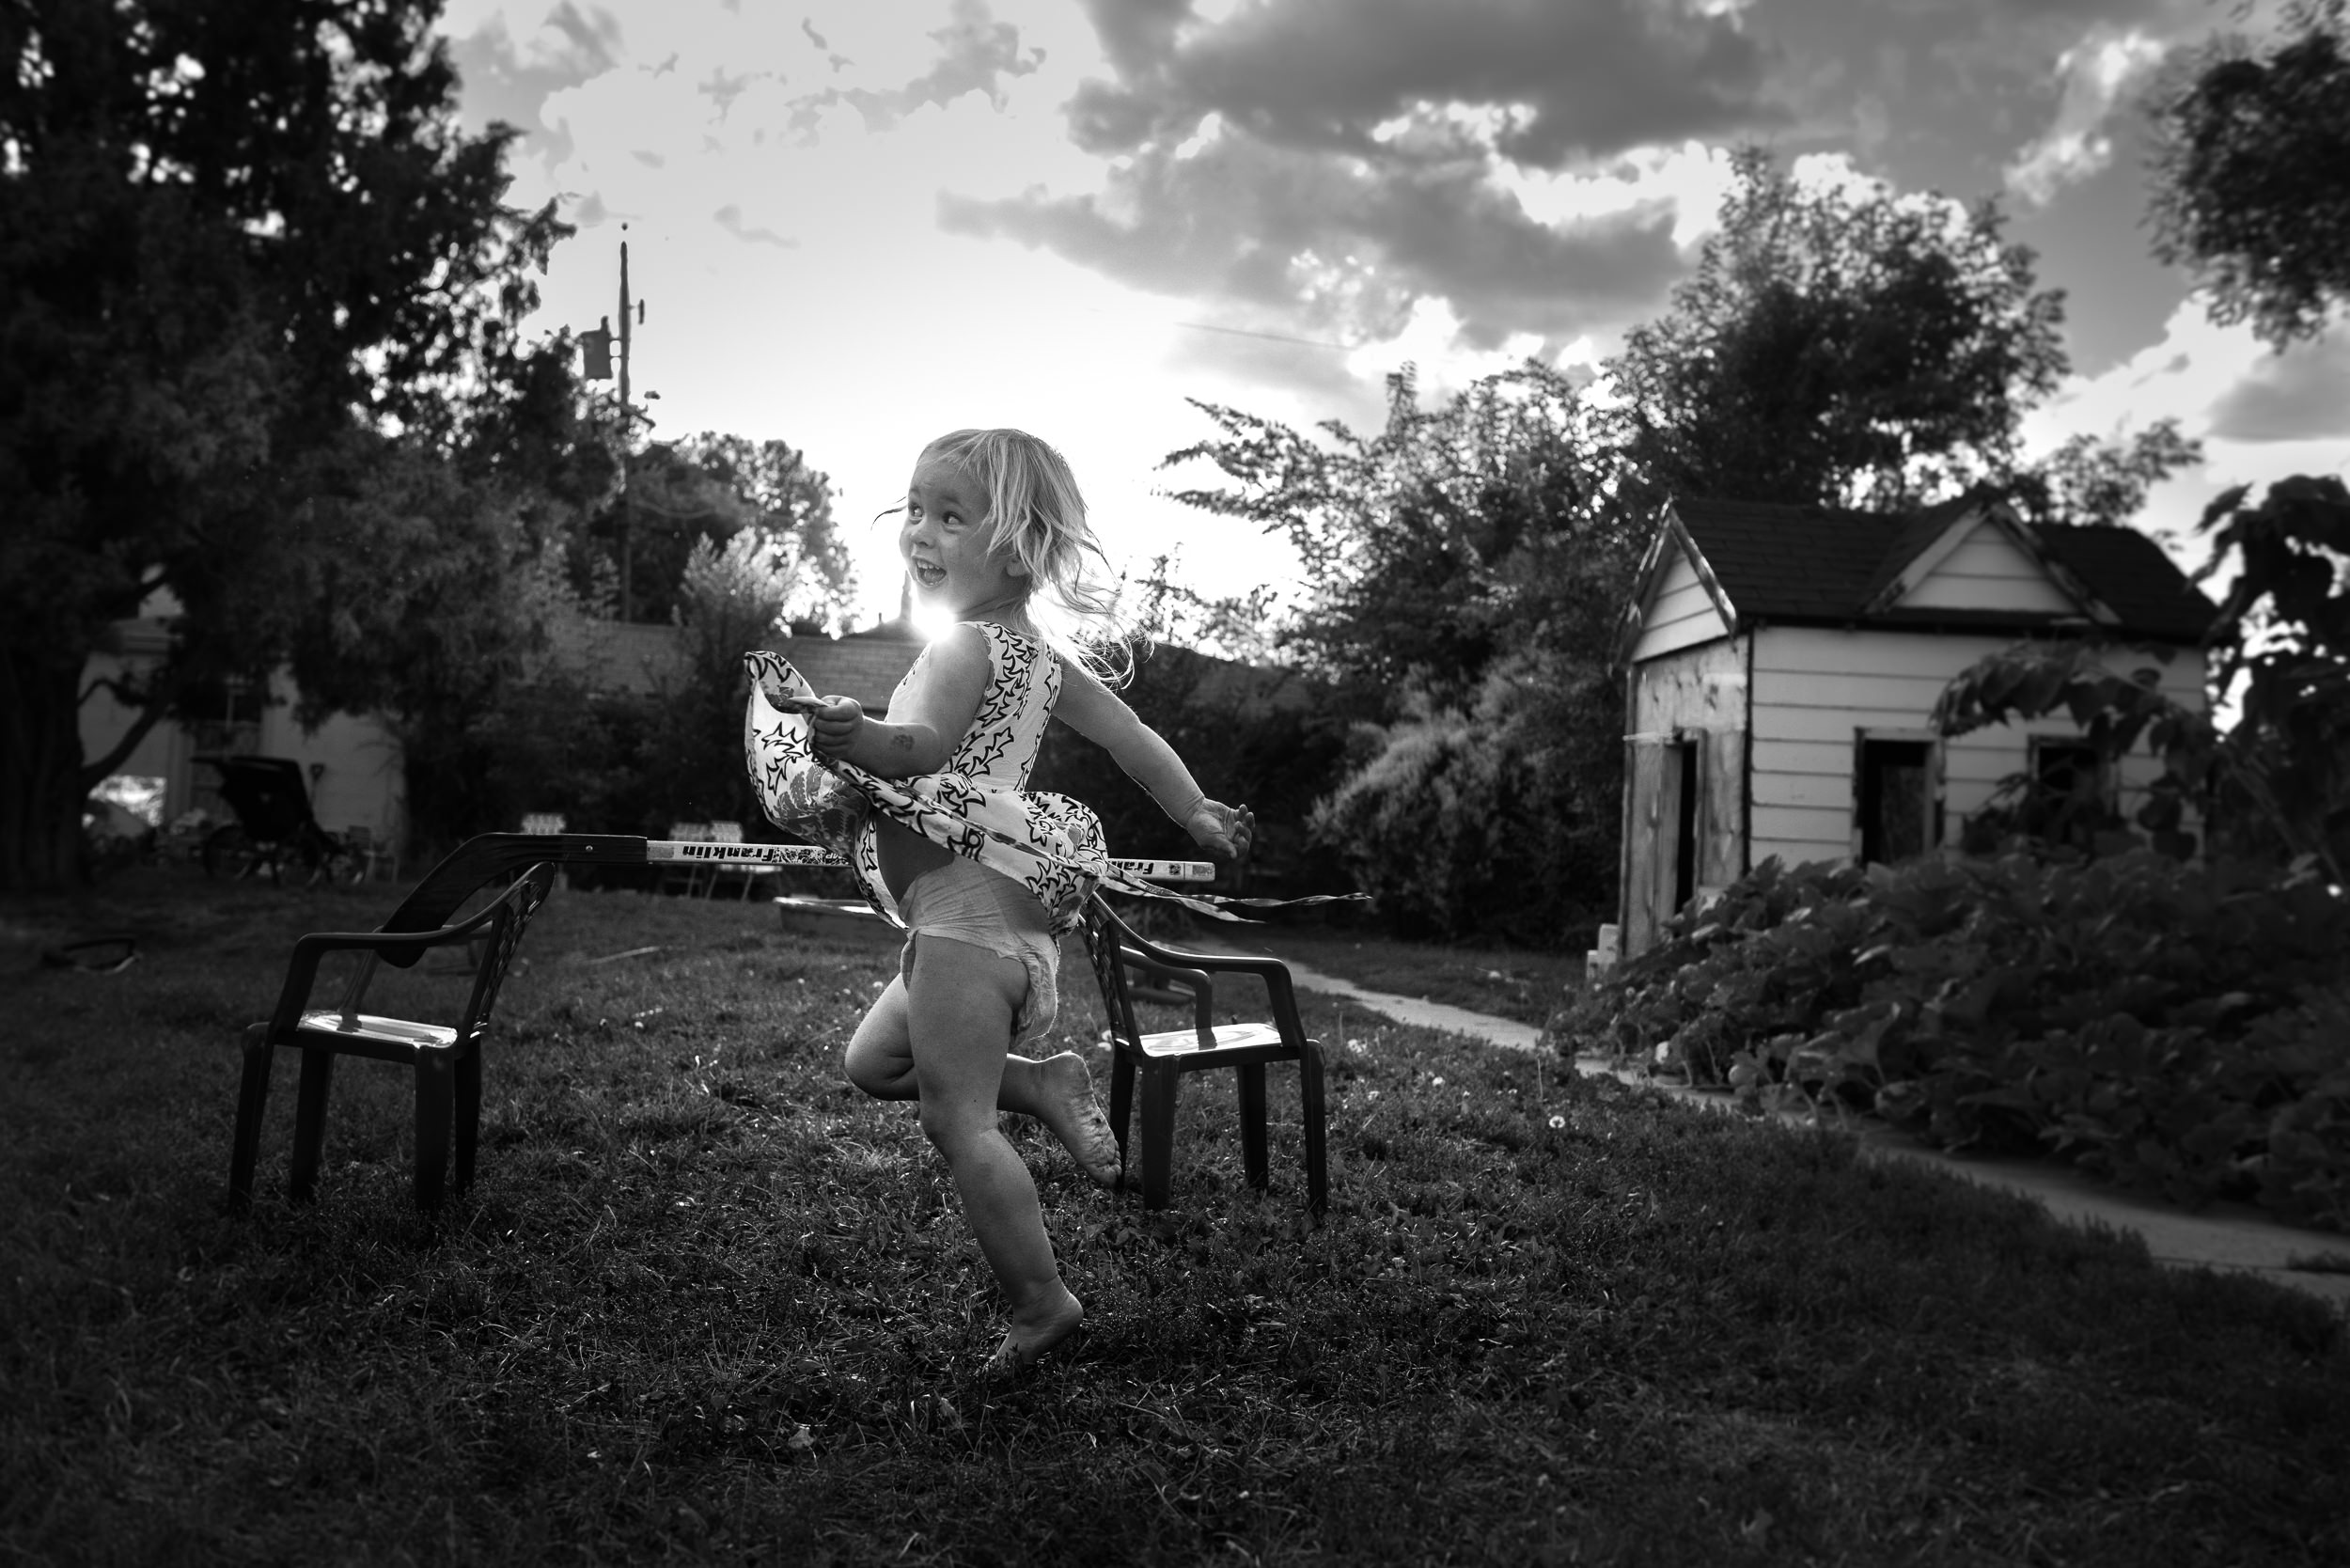 Blog - The Pen & Camera - Gratitude Journal, Inspirational, Motherhood, Writing, Denver, Colorado -  Molly Rees Photo - Black and White Documentary Childhood Photography - girl dancing in yard in summer by M. Menschel